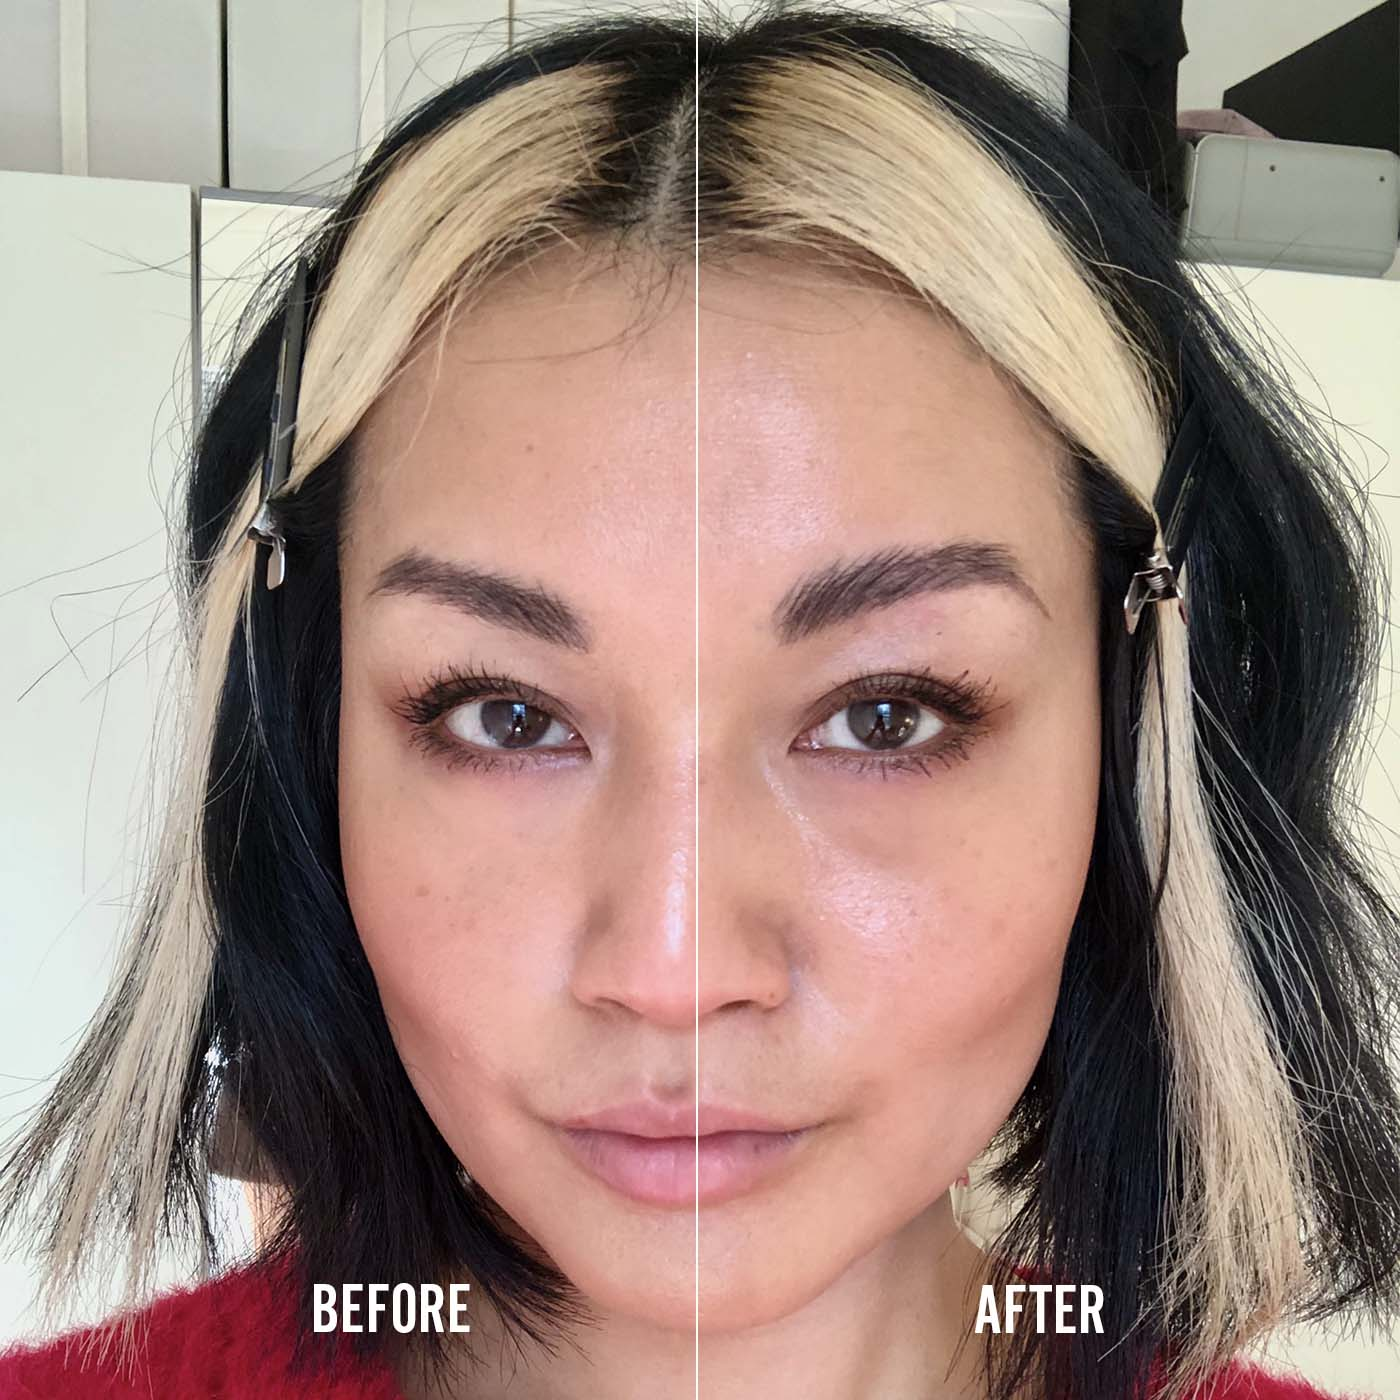 sable yong before/after brow gel